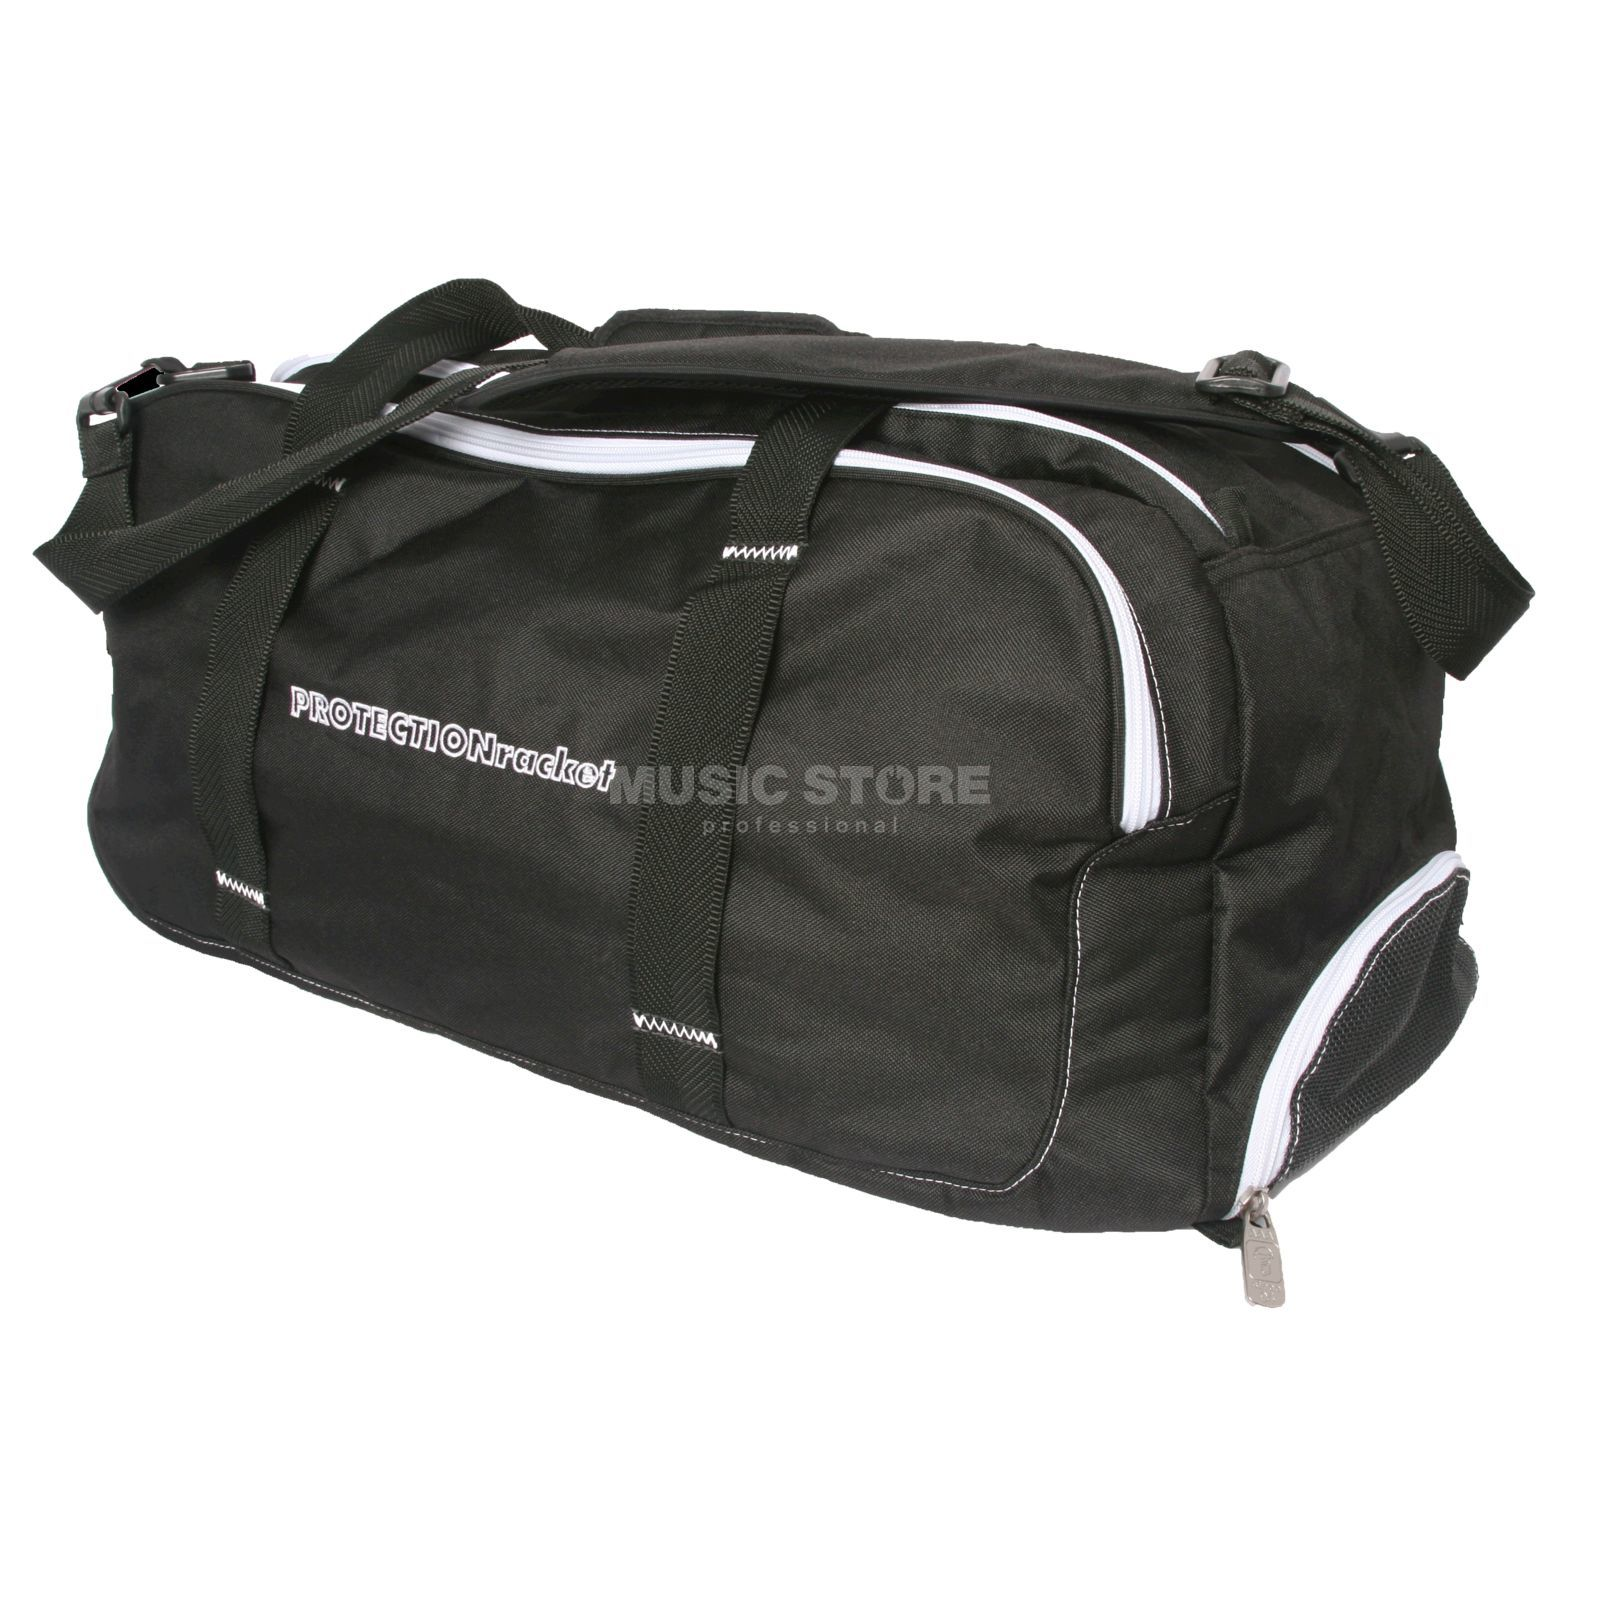 Protection Racket Multi Purpose CarryBag 9260-22  Produktbild